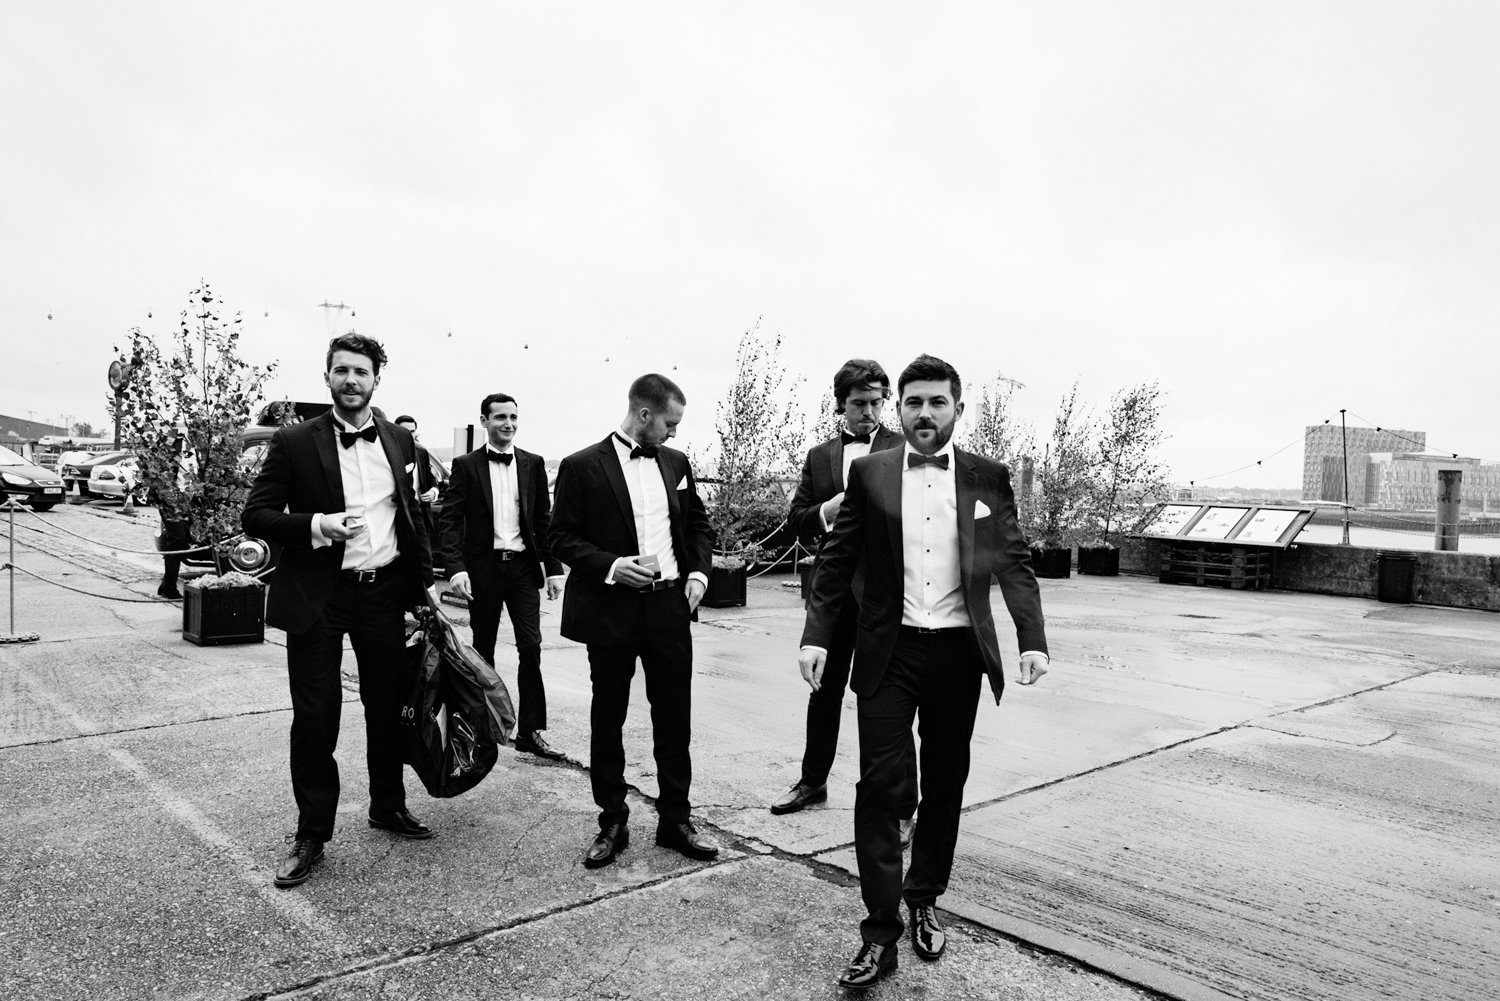 Groom and groomsmen in black tie London